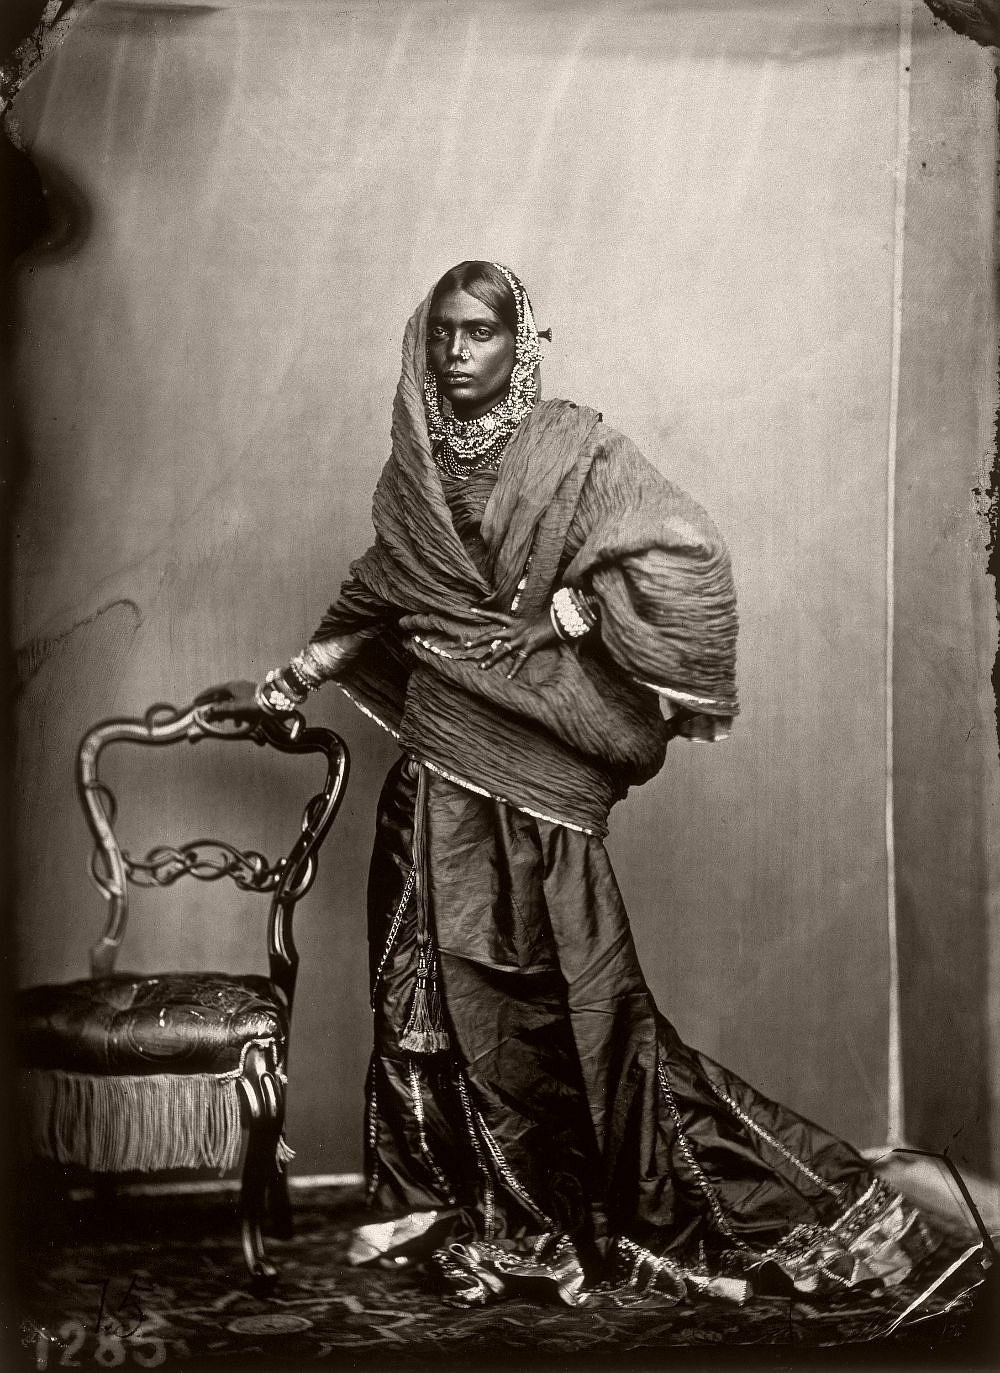 Full portrait of a woman in the harem in the royal palace of Jaipur, India, 1857–1865. (Photo by Maharaja Ram Singh III/Alinari via Getty Images)